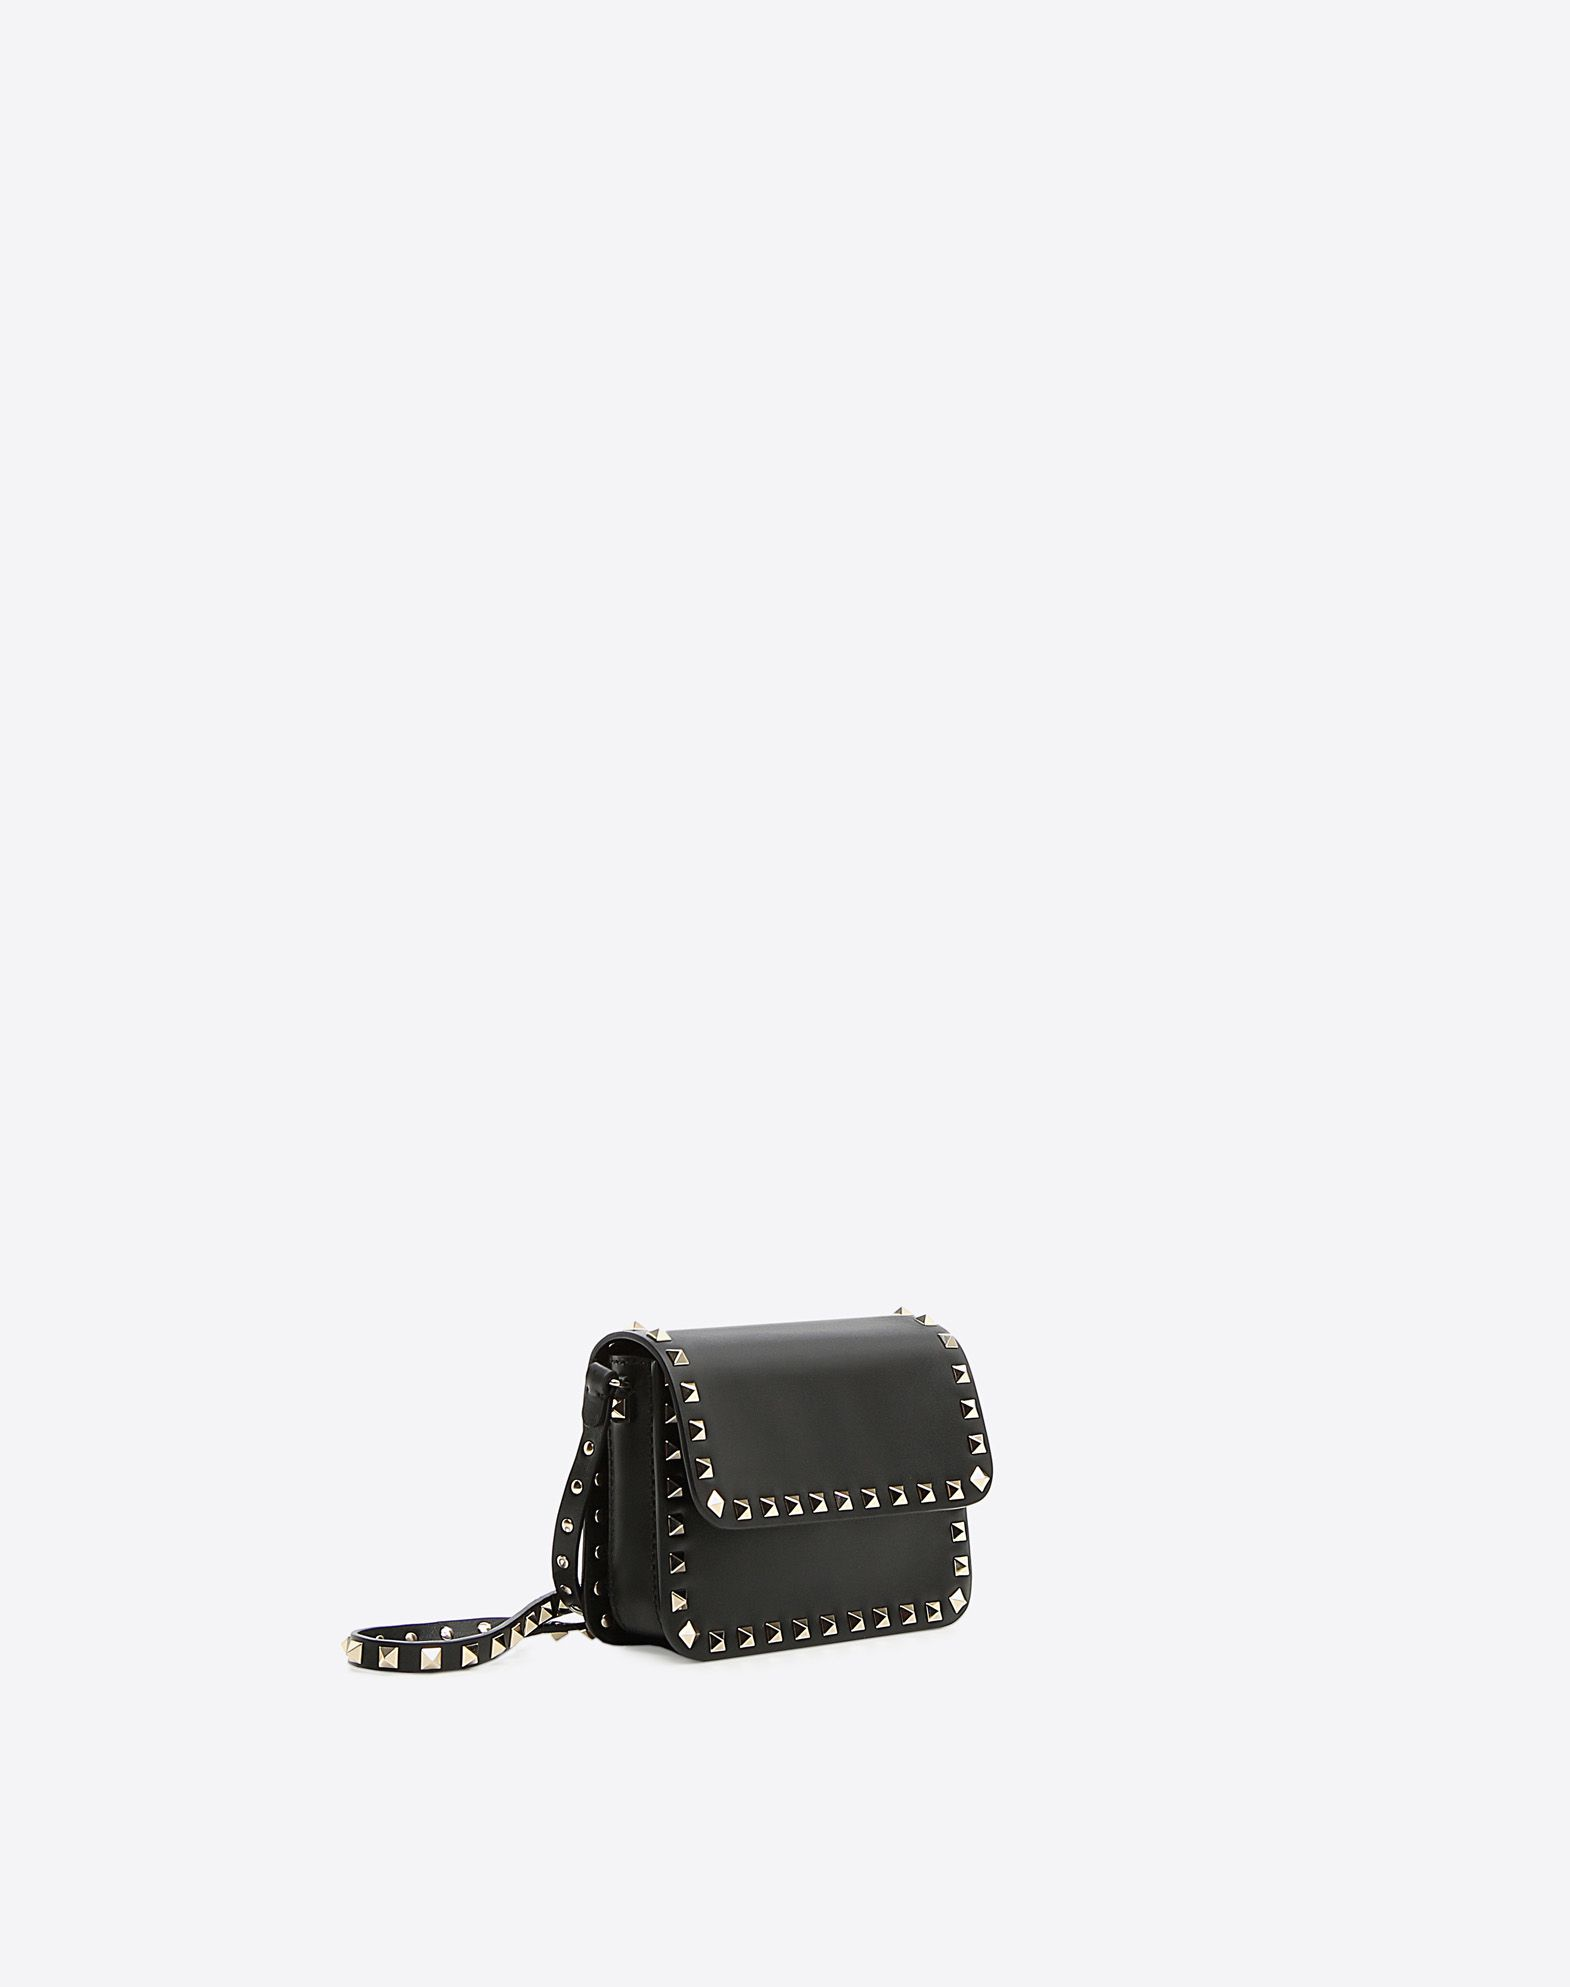 VALENTINO GARAVANI Rockstud Small Cross Body Bag CROSS BODY BAG D r